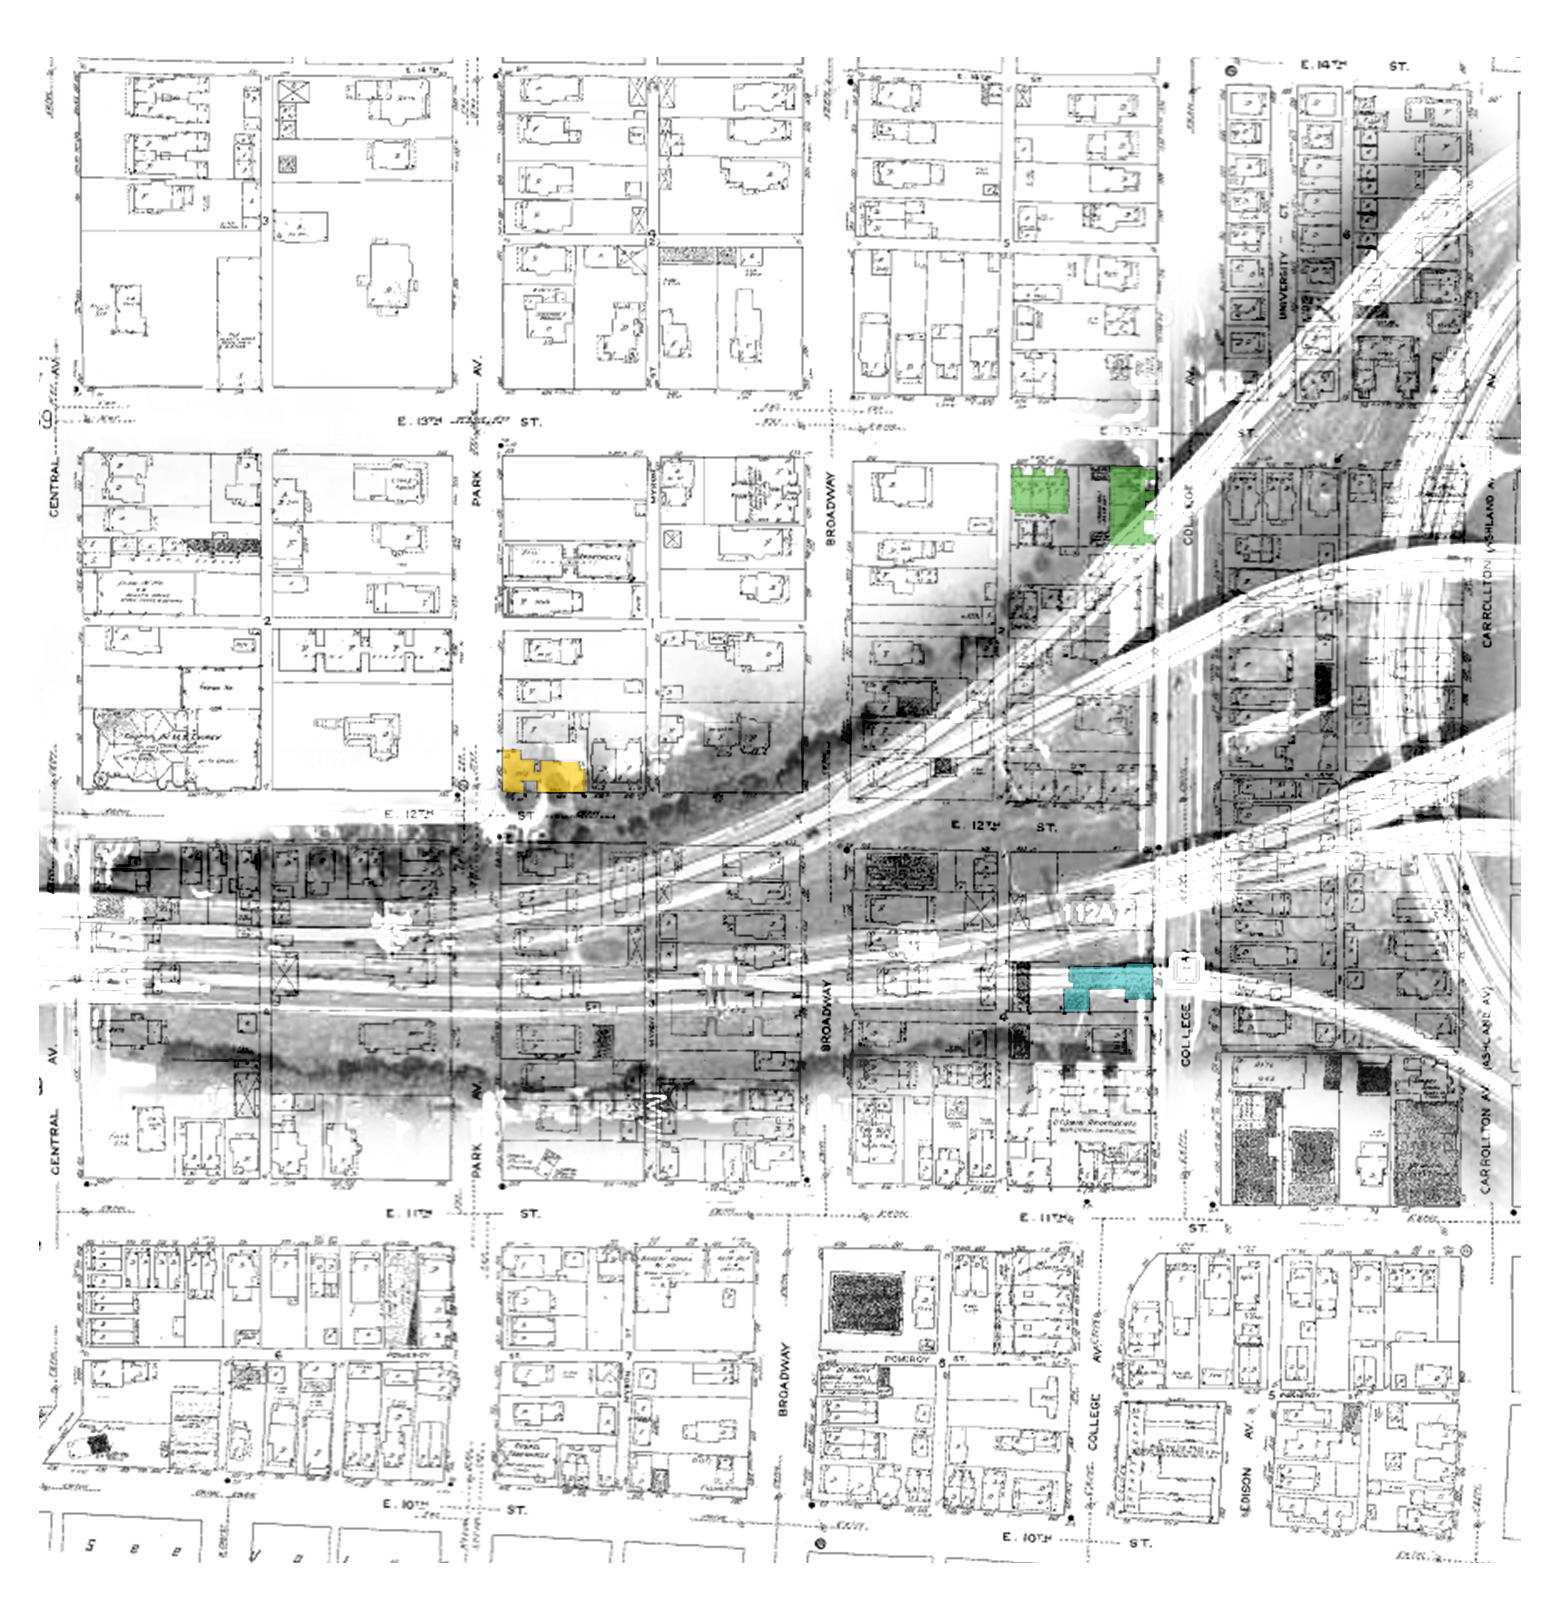 Flats Lost: I-65 Construction